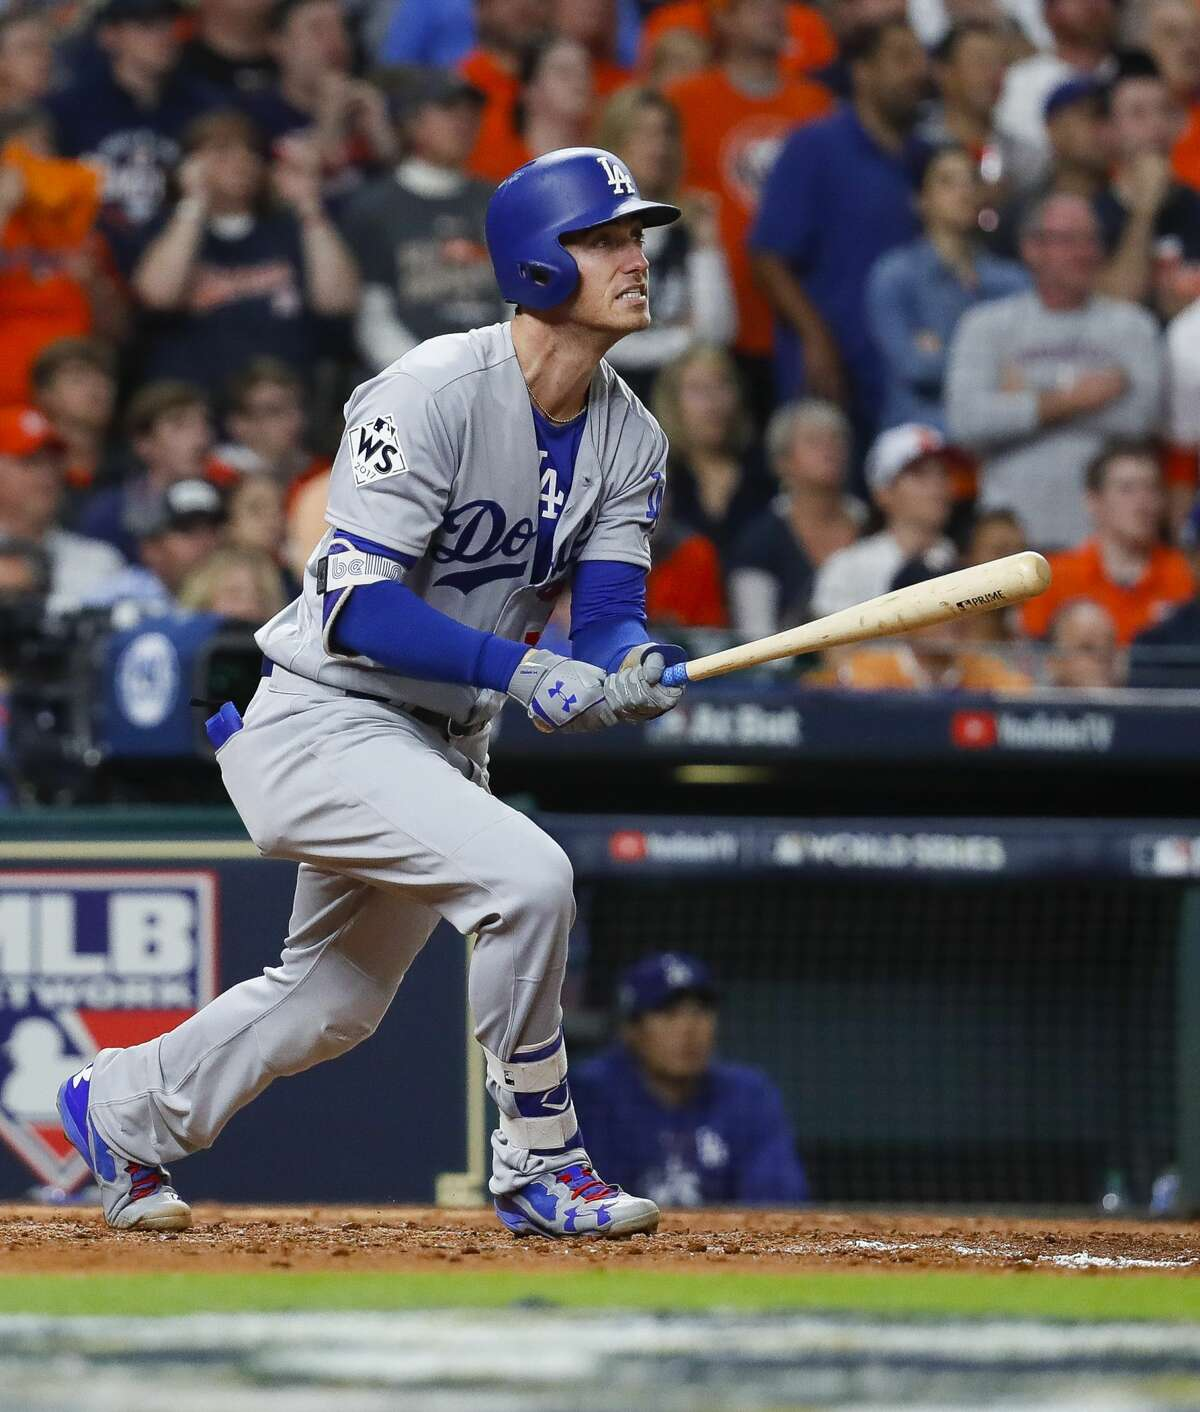 Los Angeles Dodgers first baseman Cody Bellinger (35) hits a three-run home run in the fifth inning of Game 5 of the World Series at Minute Maid Park on Sunday, Oct. 29, 2017, in Houston.